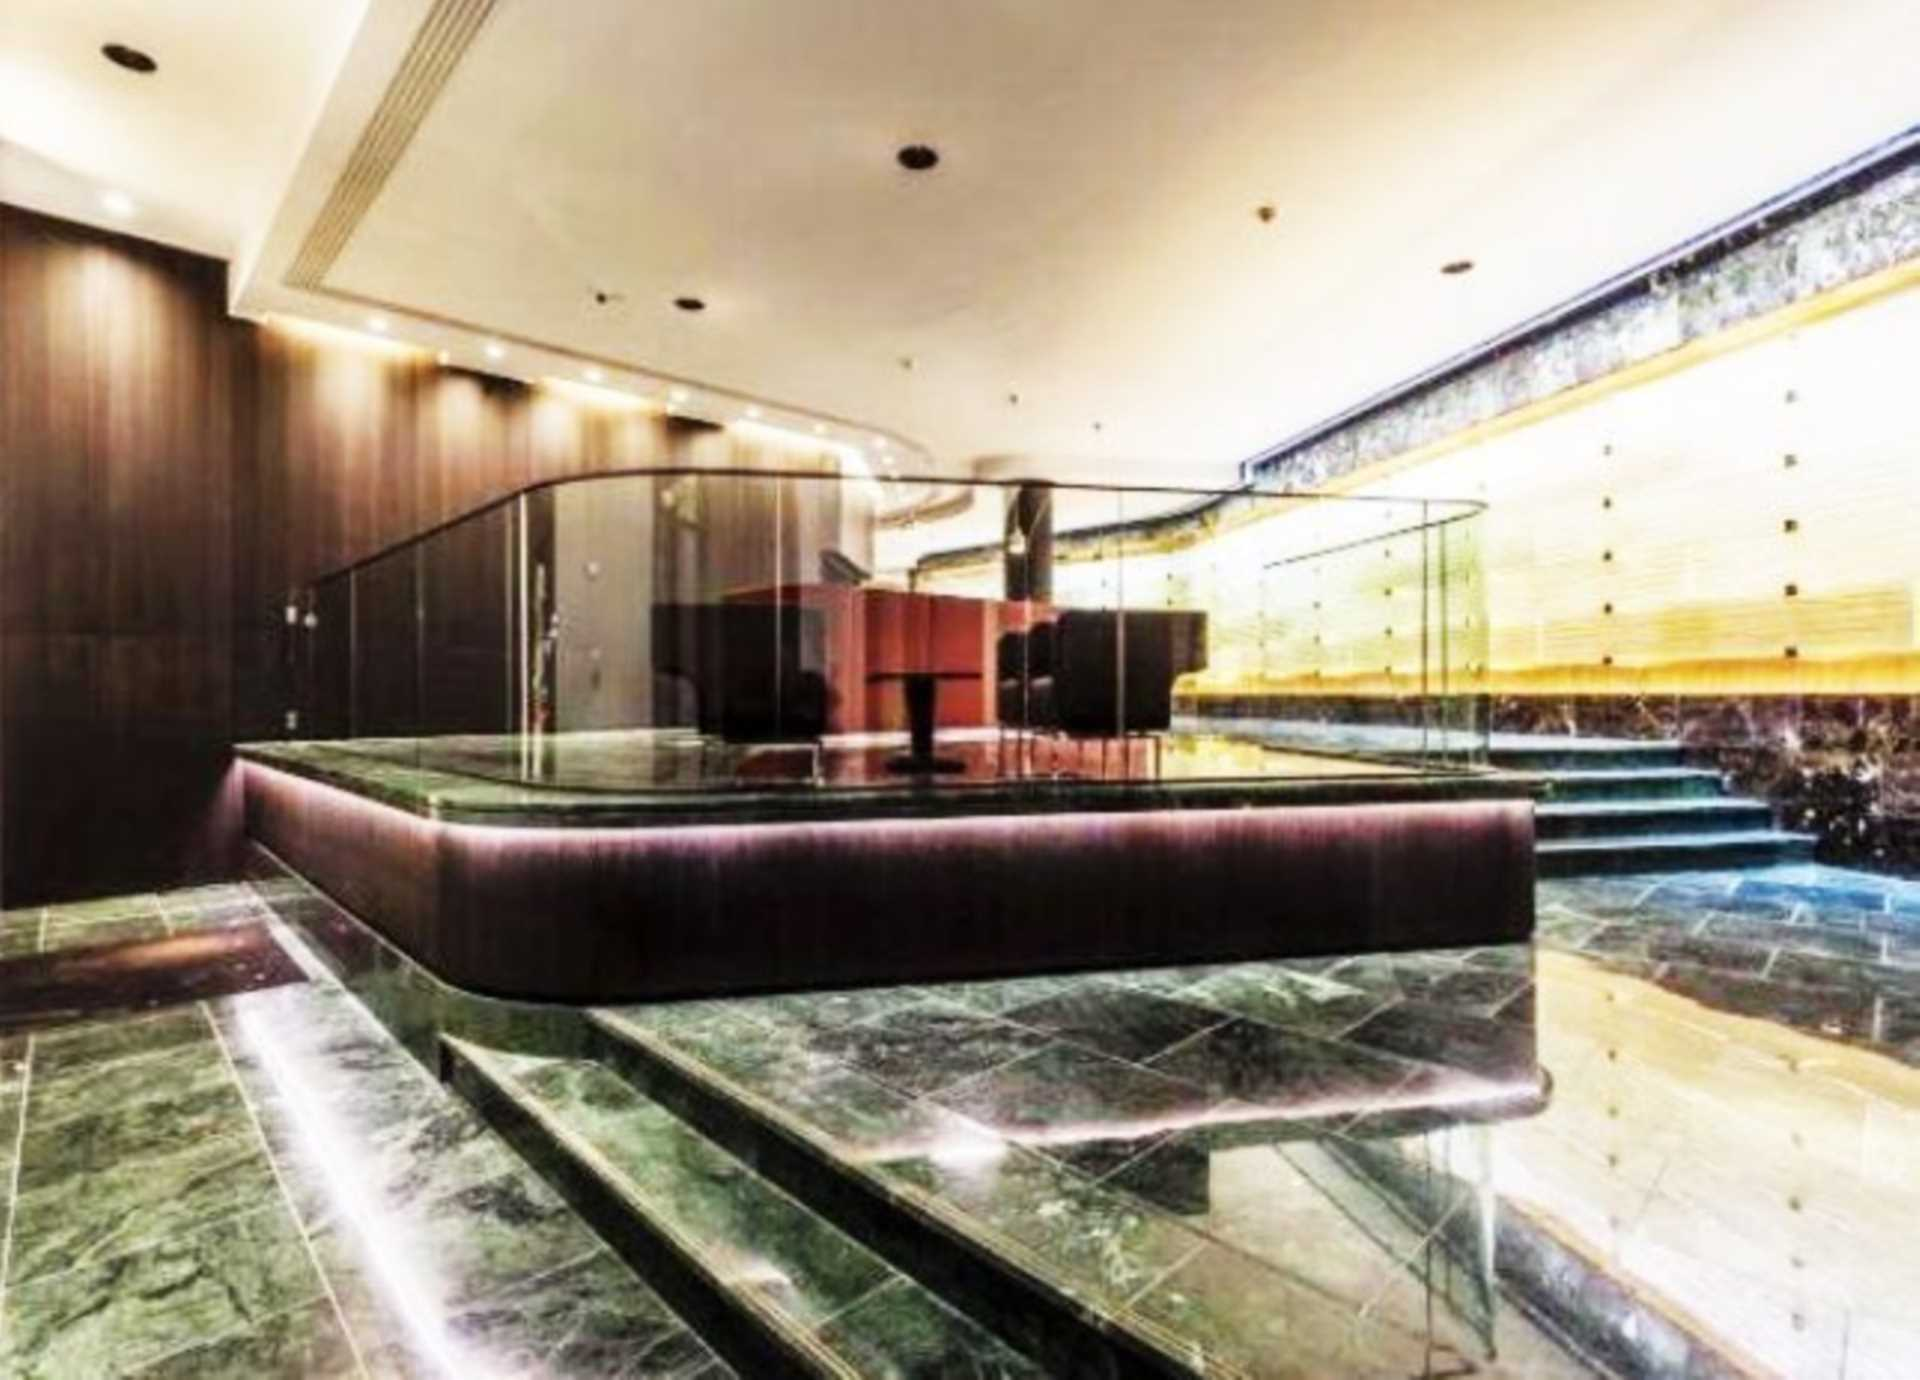 2 Bedroom Flat For Sale In Marconi House Strand Wc2r London